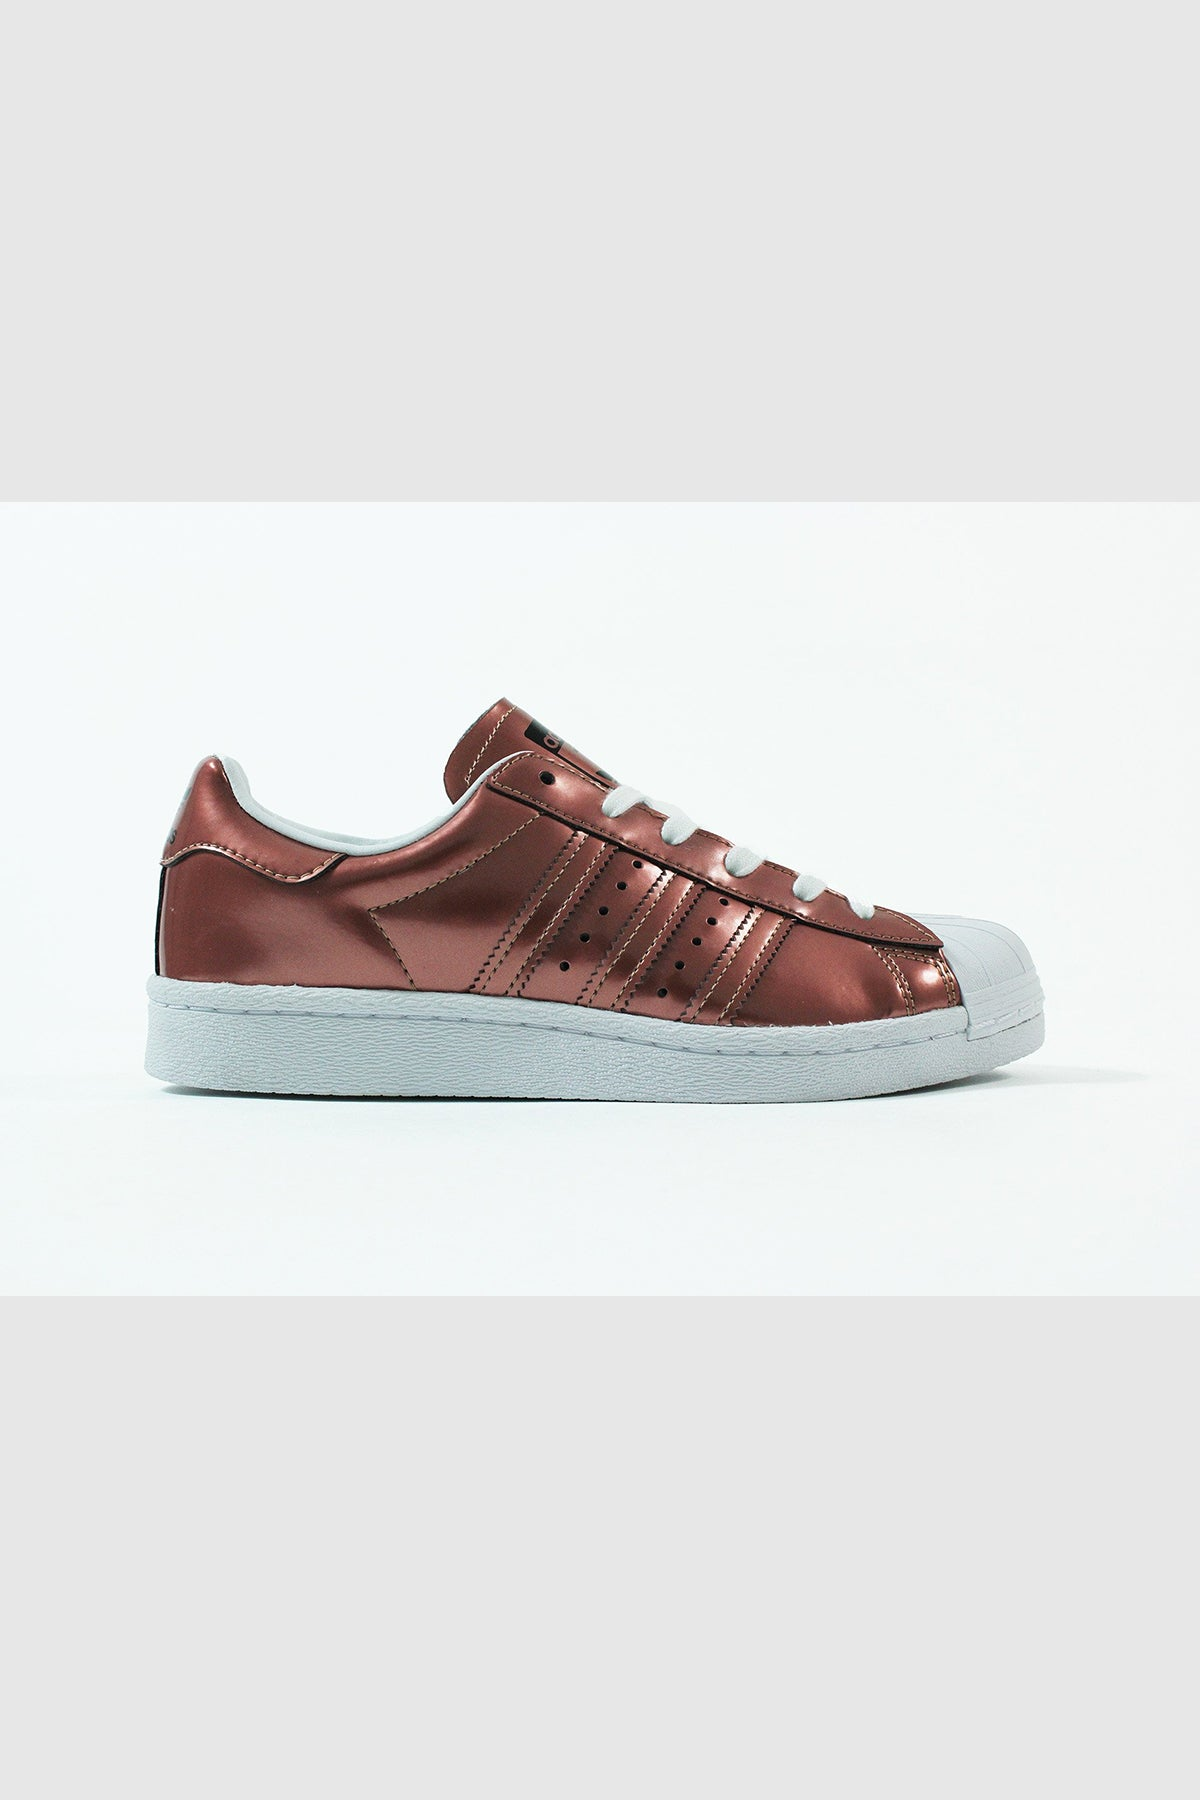 Adidas - Superstar Boost Women (Copper Metallic/ White)